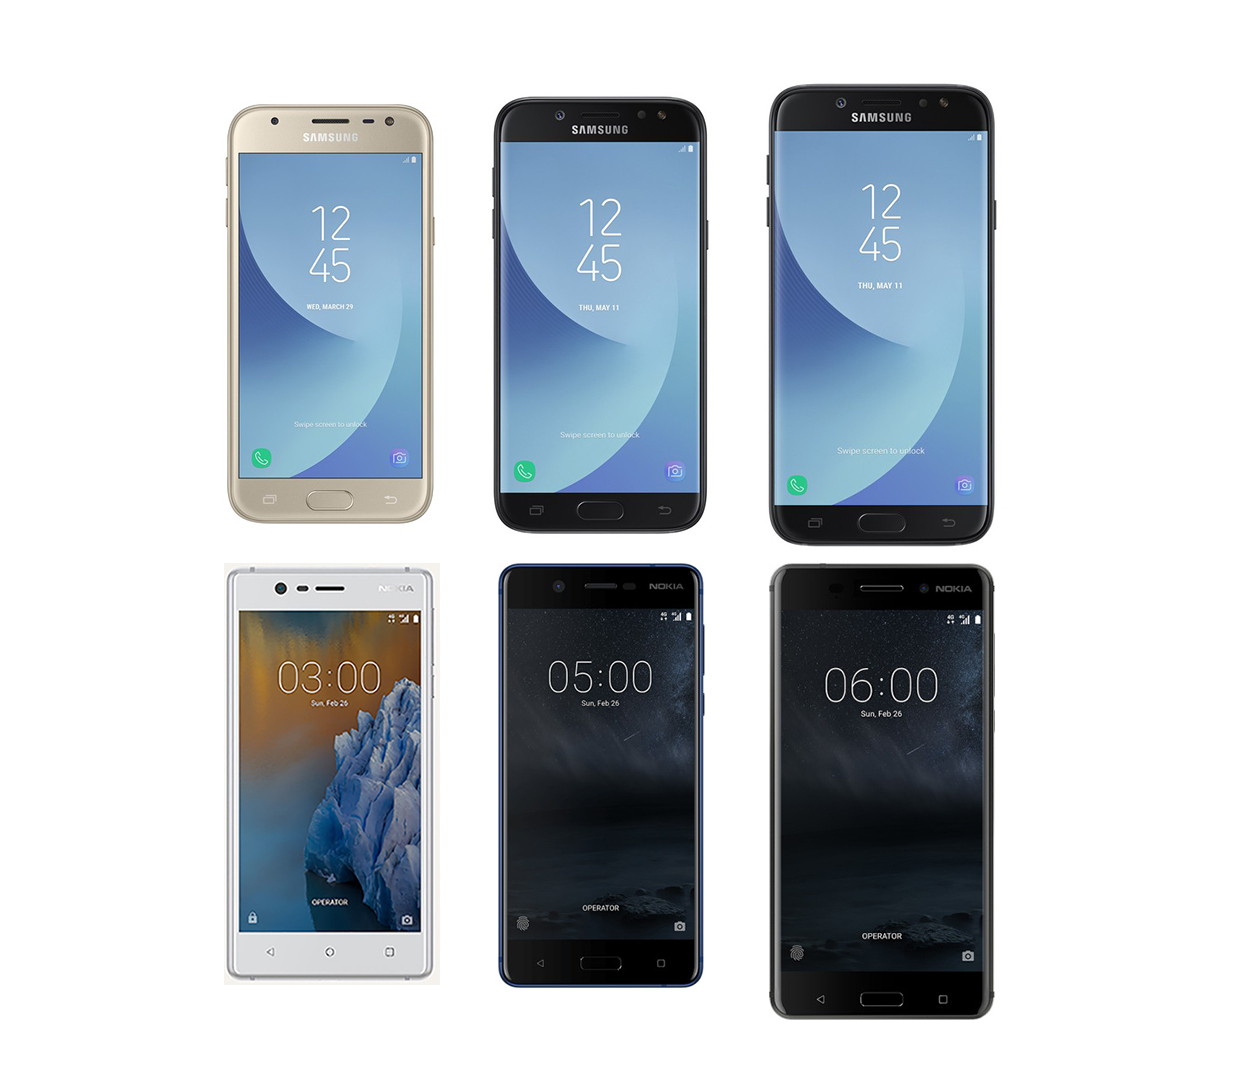 This Week Samsung Introduced A Refresh To Their Low End J Series Of Devices Introducing The New J3 2017 J5 And J7 These